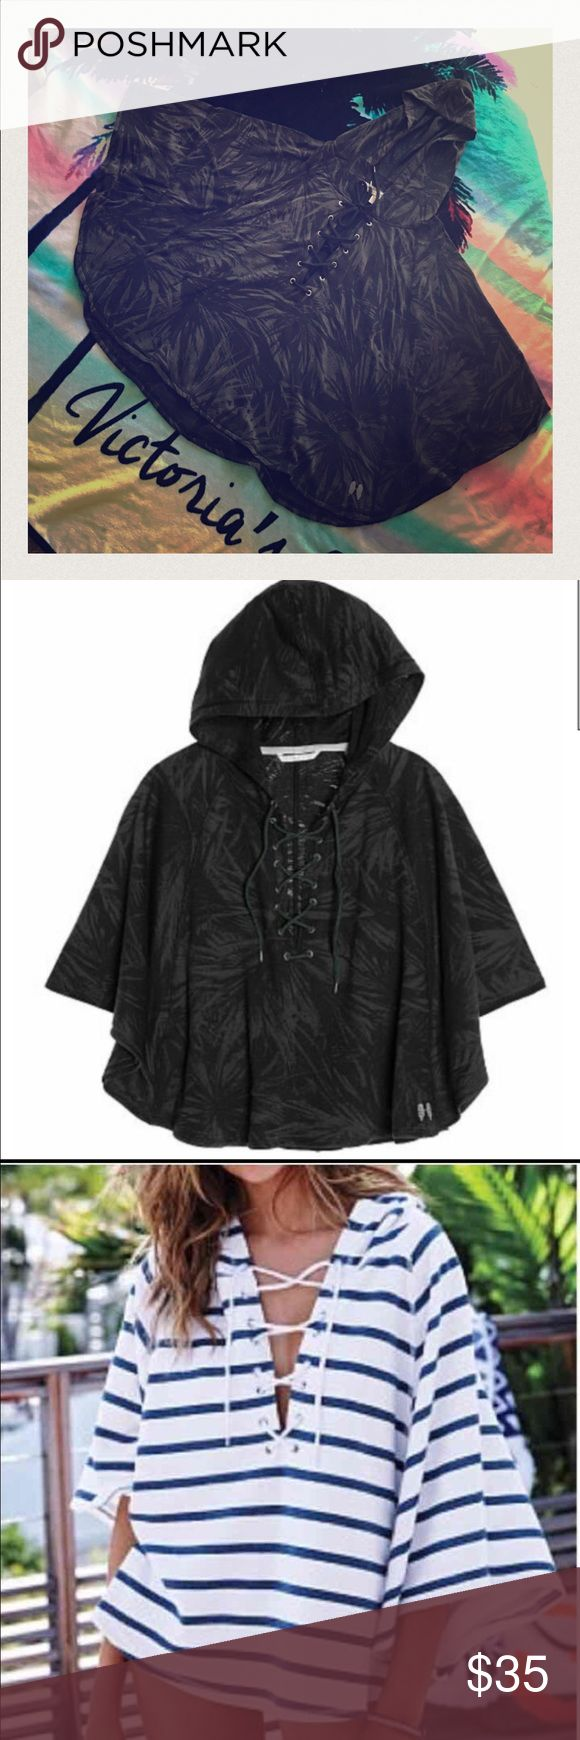 Today's Special! Victoria's Secret Ponchos New, never use and still on its original packaging!! Black color see through prints, soft, light and comfy cotton material hooded poncho with lace tie closure in the front, plus tiny angels wings detail on bottom. Perfect beach cover up. Original tag price was $69.95. Size S but fit M as well. Third photo shows a model wearing a ponchos with a different color. Color of the ponchos is Black Palm Burn Out. Victoria's Secret Sweaters Shrugs & Ponchos